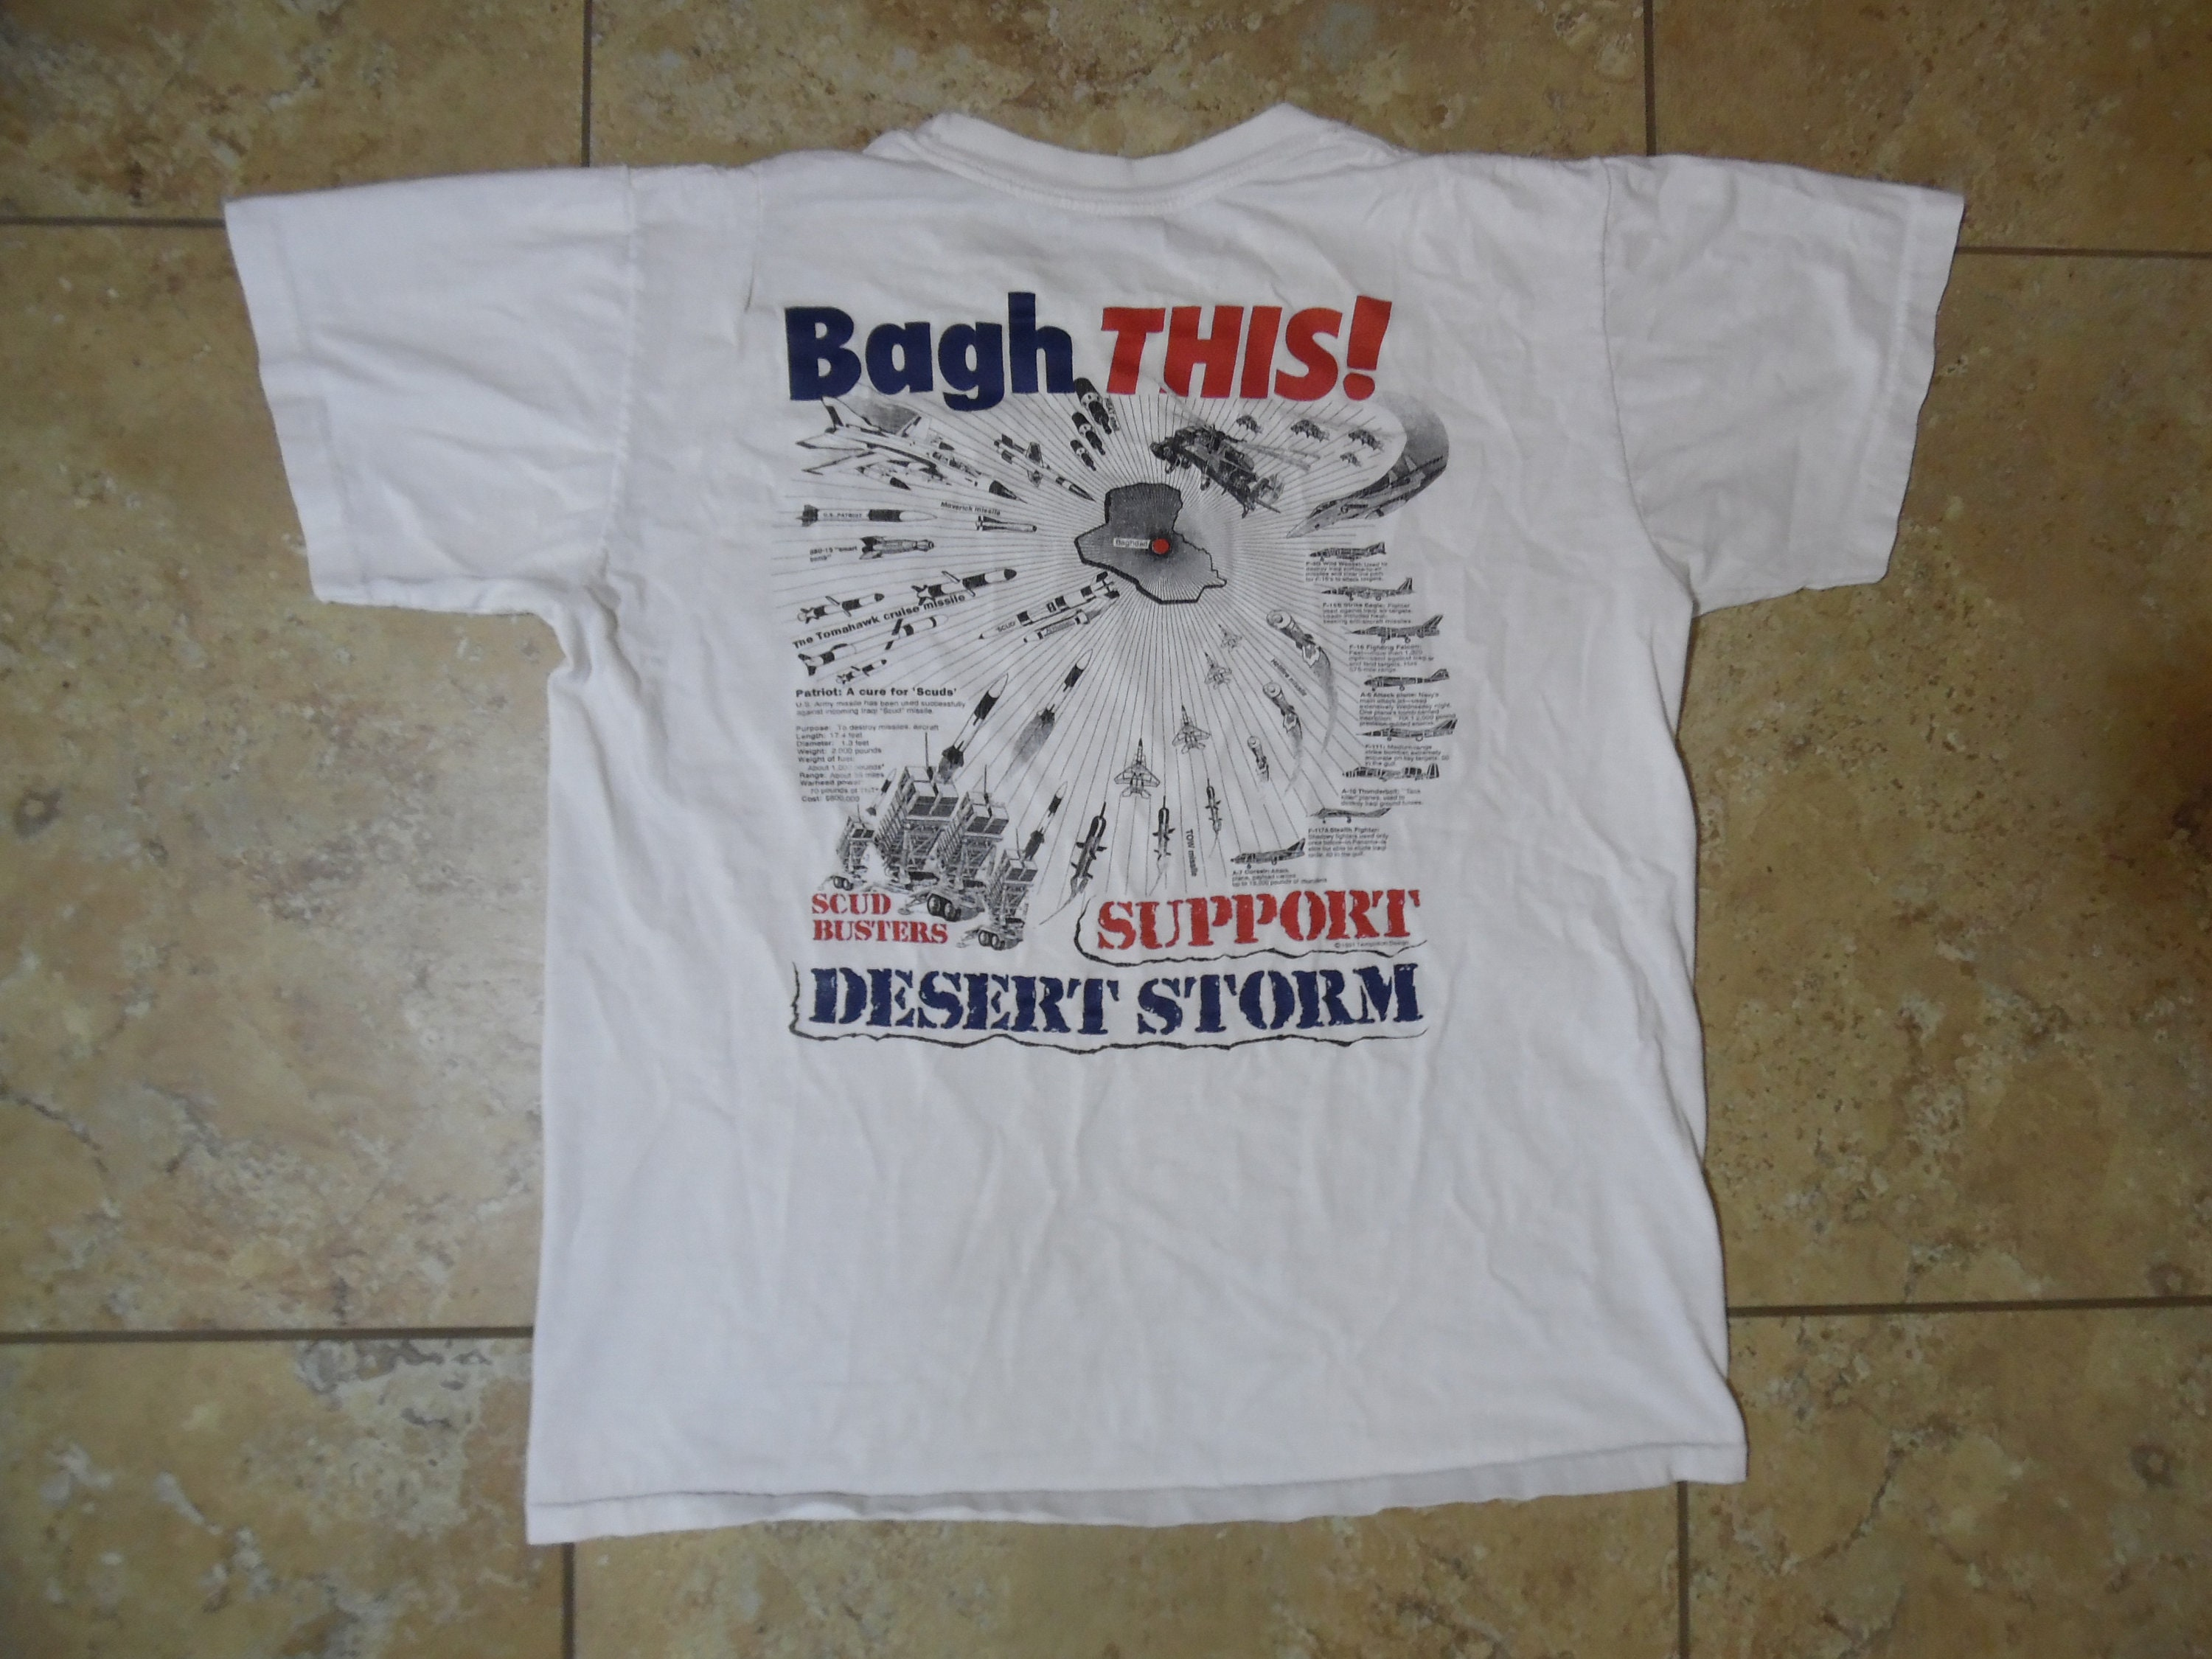 finest selection a26e5 7ab10 VTG Support Our Troops Desert Storm Double Sided White T-Shirt sz L  Streetwear